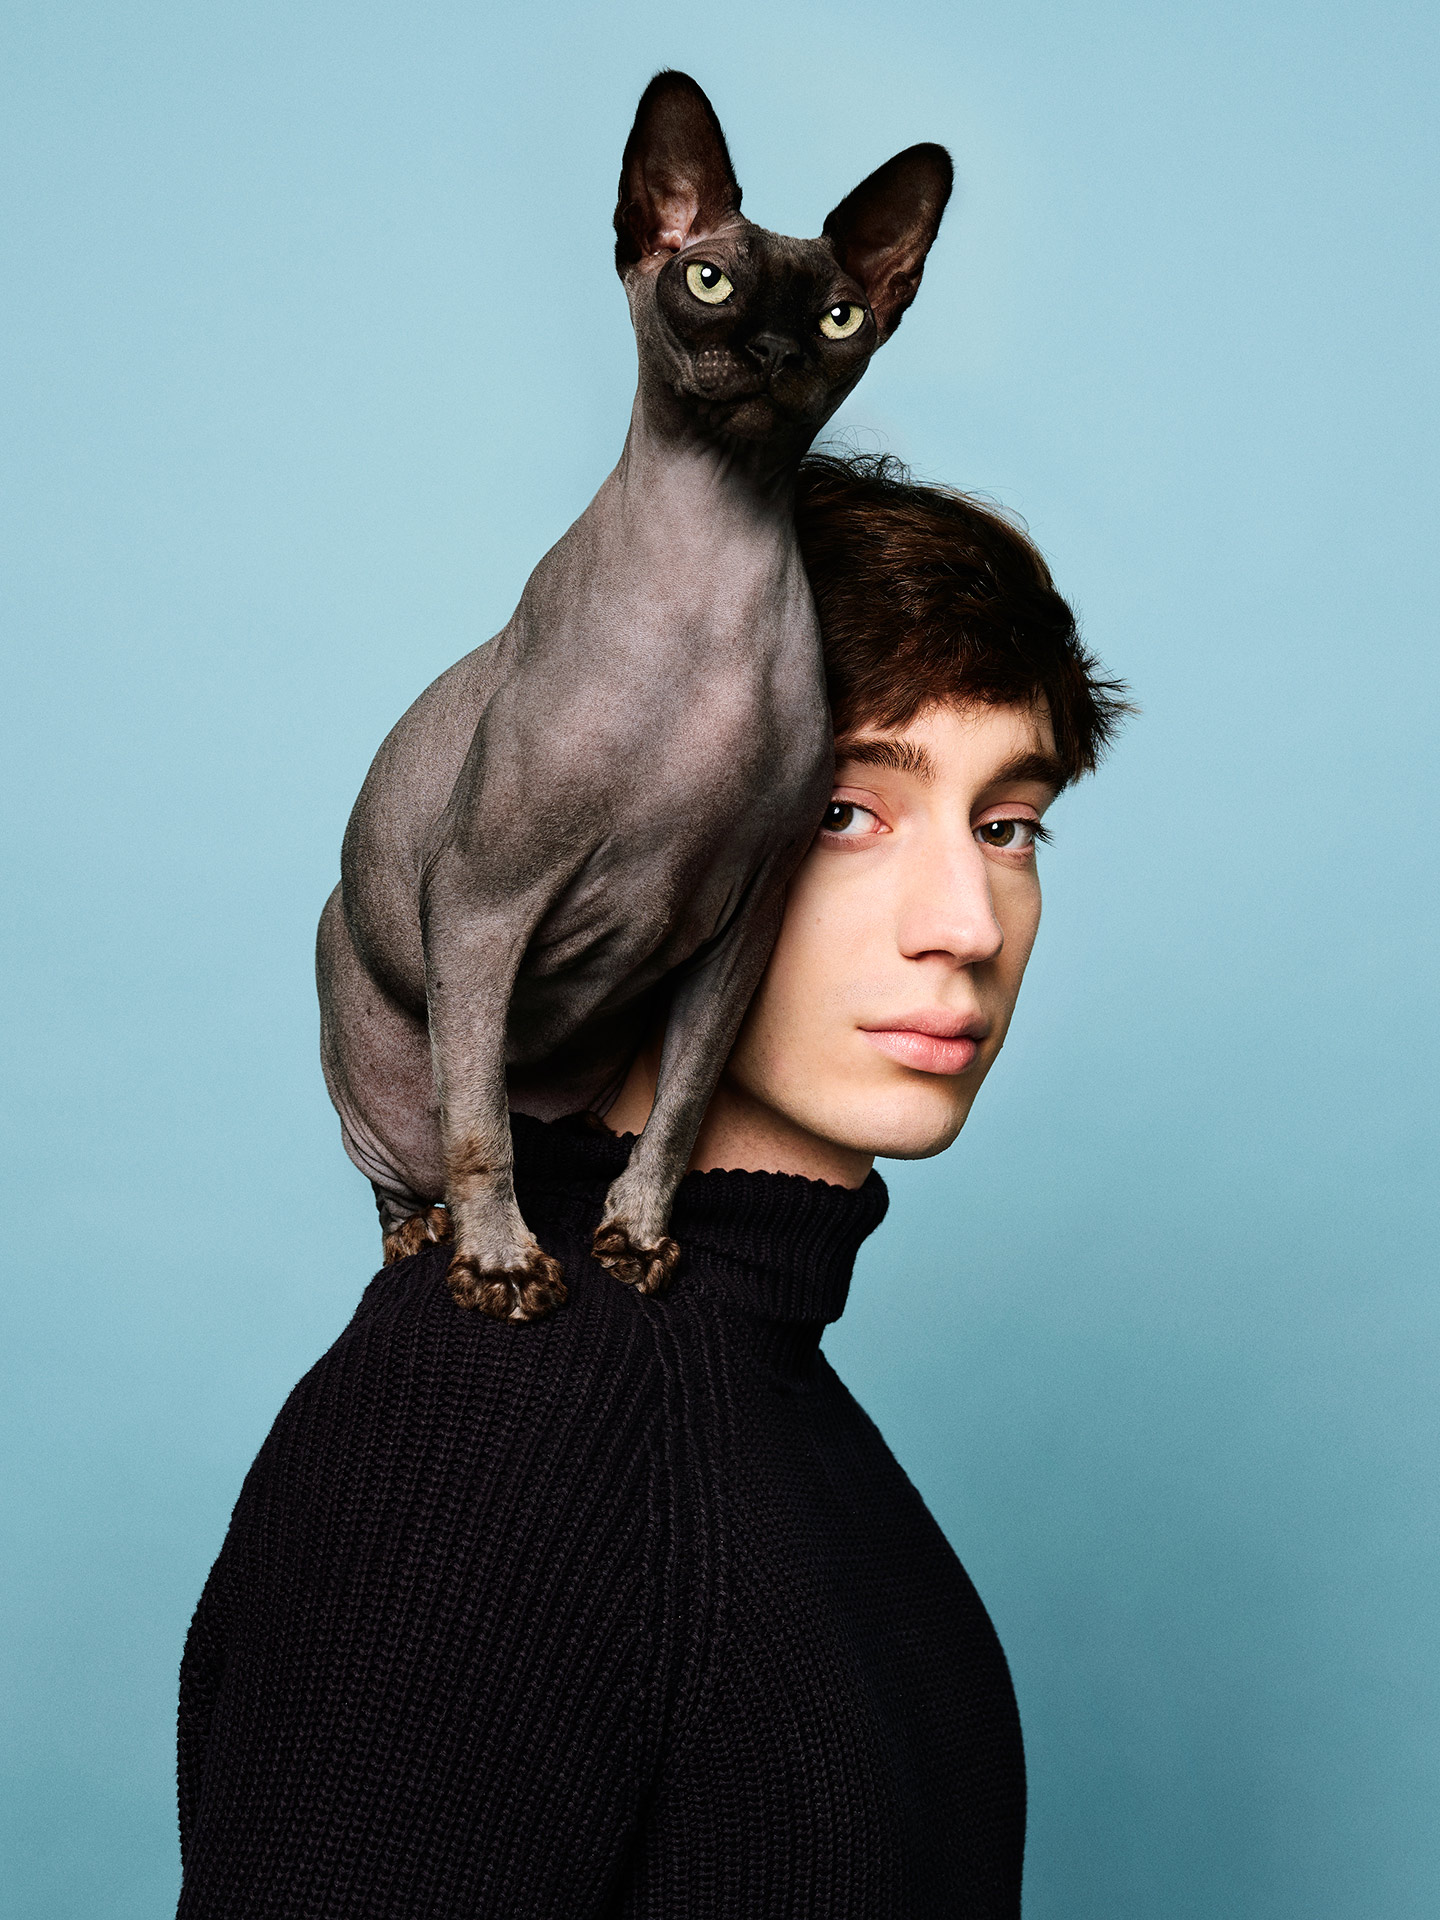 portrait of Theodore Pellerin with hairless cat on his shoulder light blue background by Jocelyn Michel for Journal de Montréal